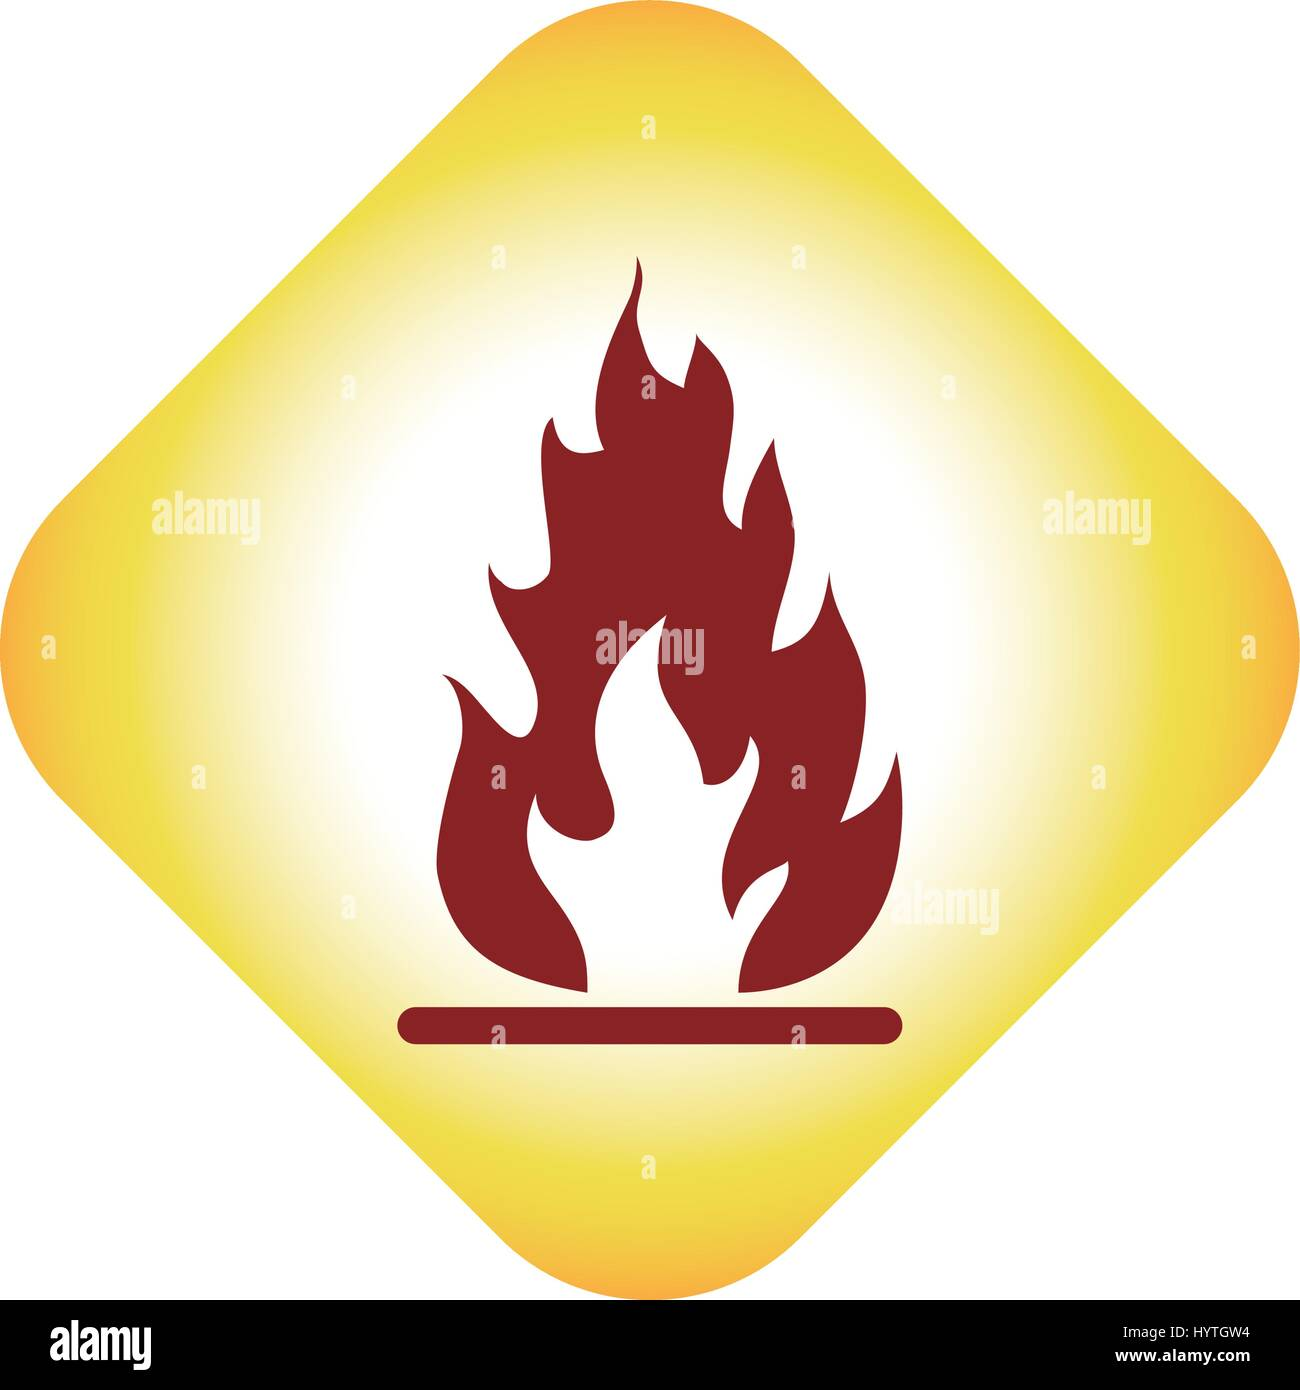 Flammable advert sign - Stock Image